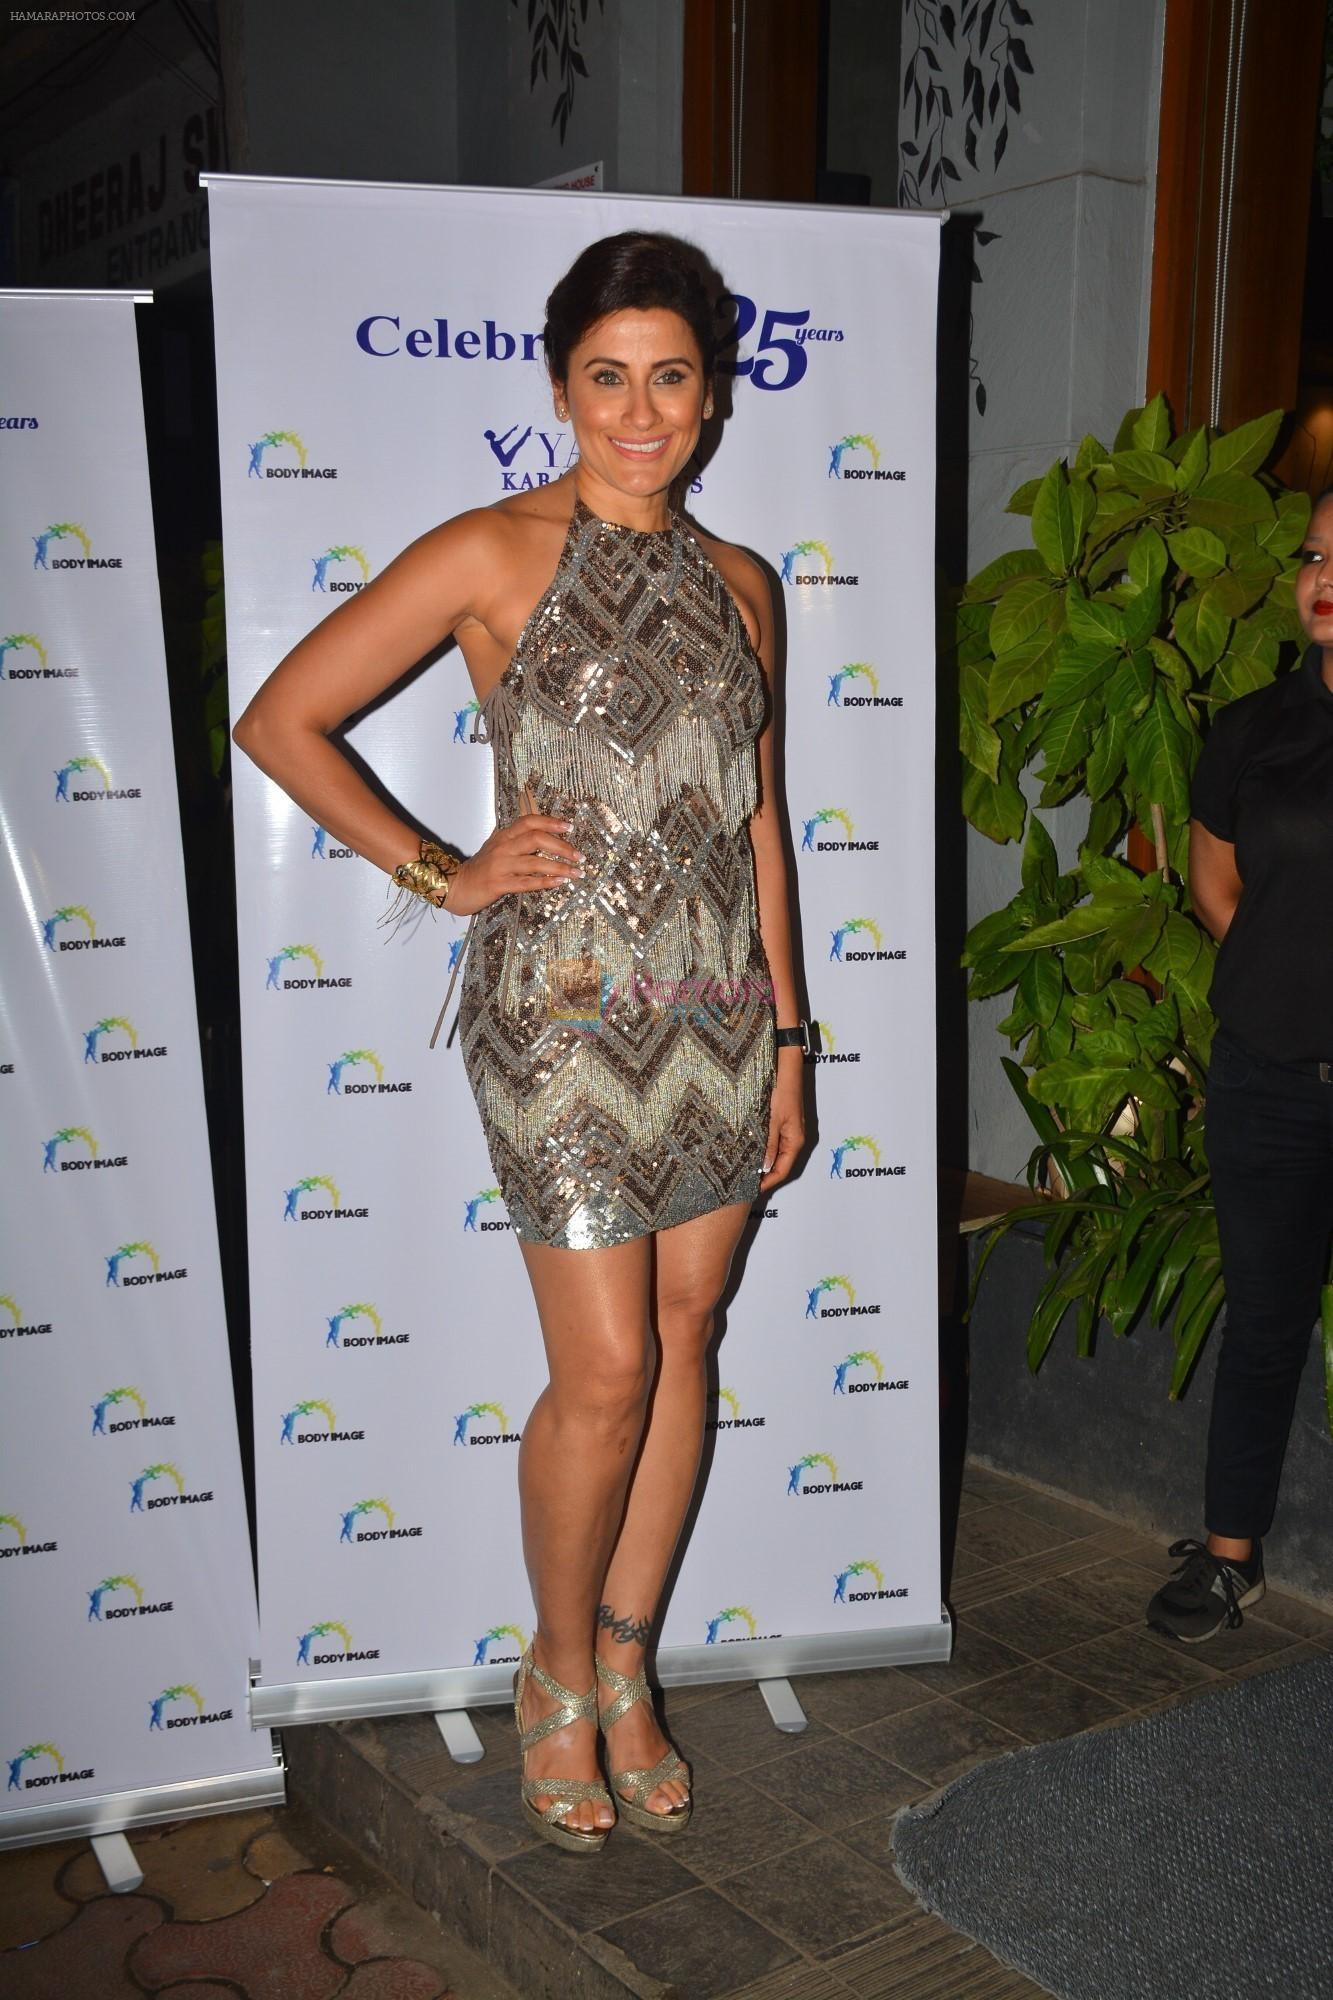 Yasmin at the celebration of Yasmin Karachiwala's 25years in Fitness Training At Bandra on 23rd Sept 2018